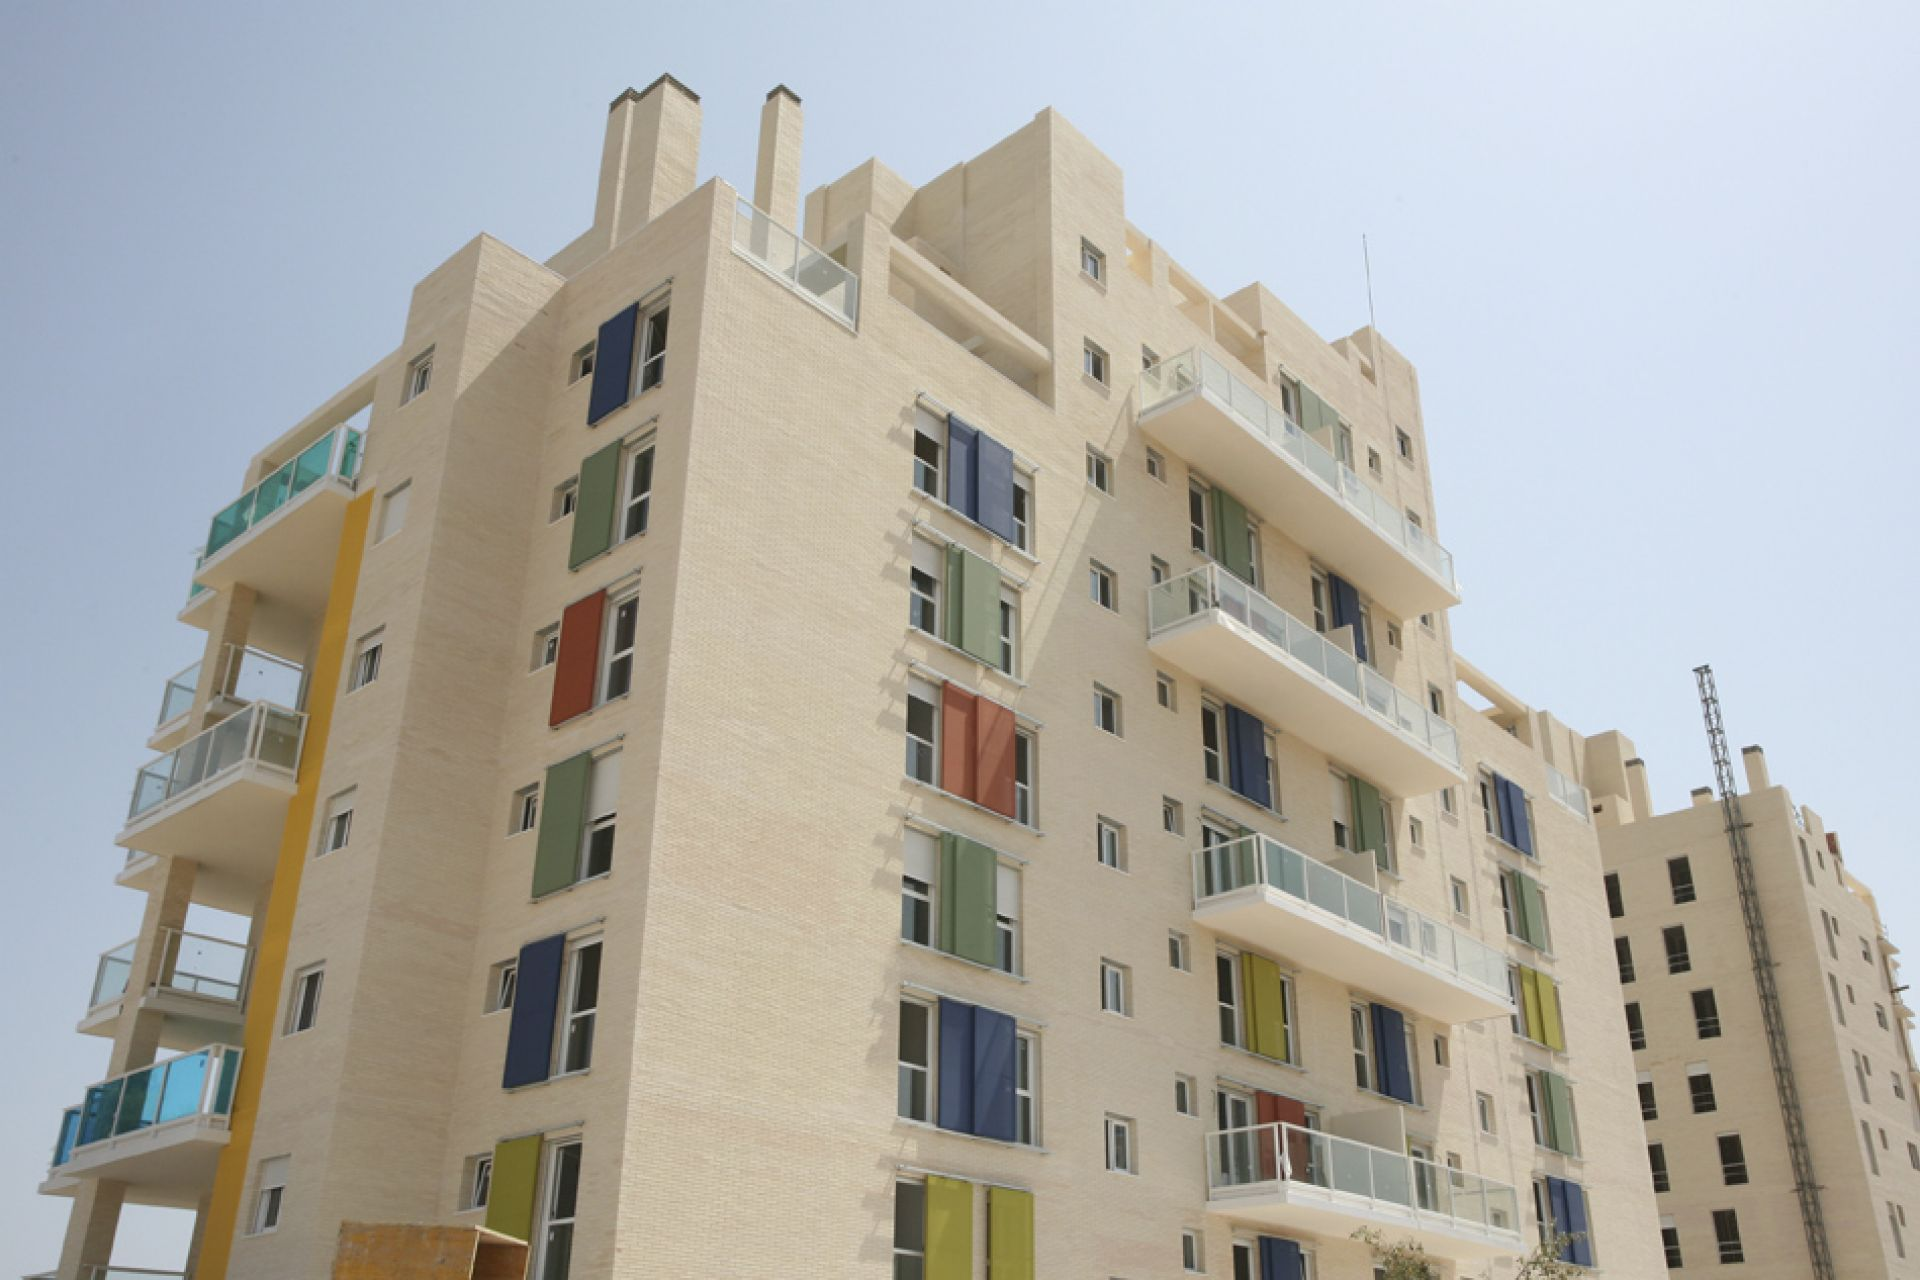 Building with colored i-tensing panels